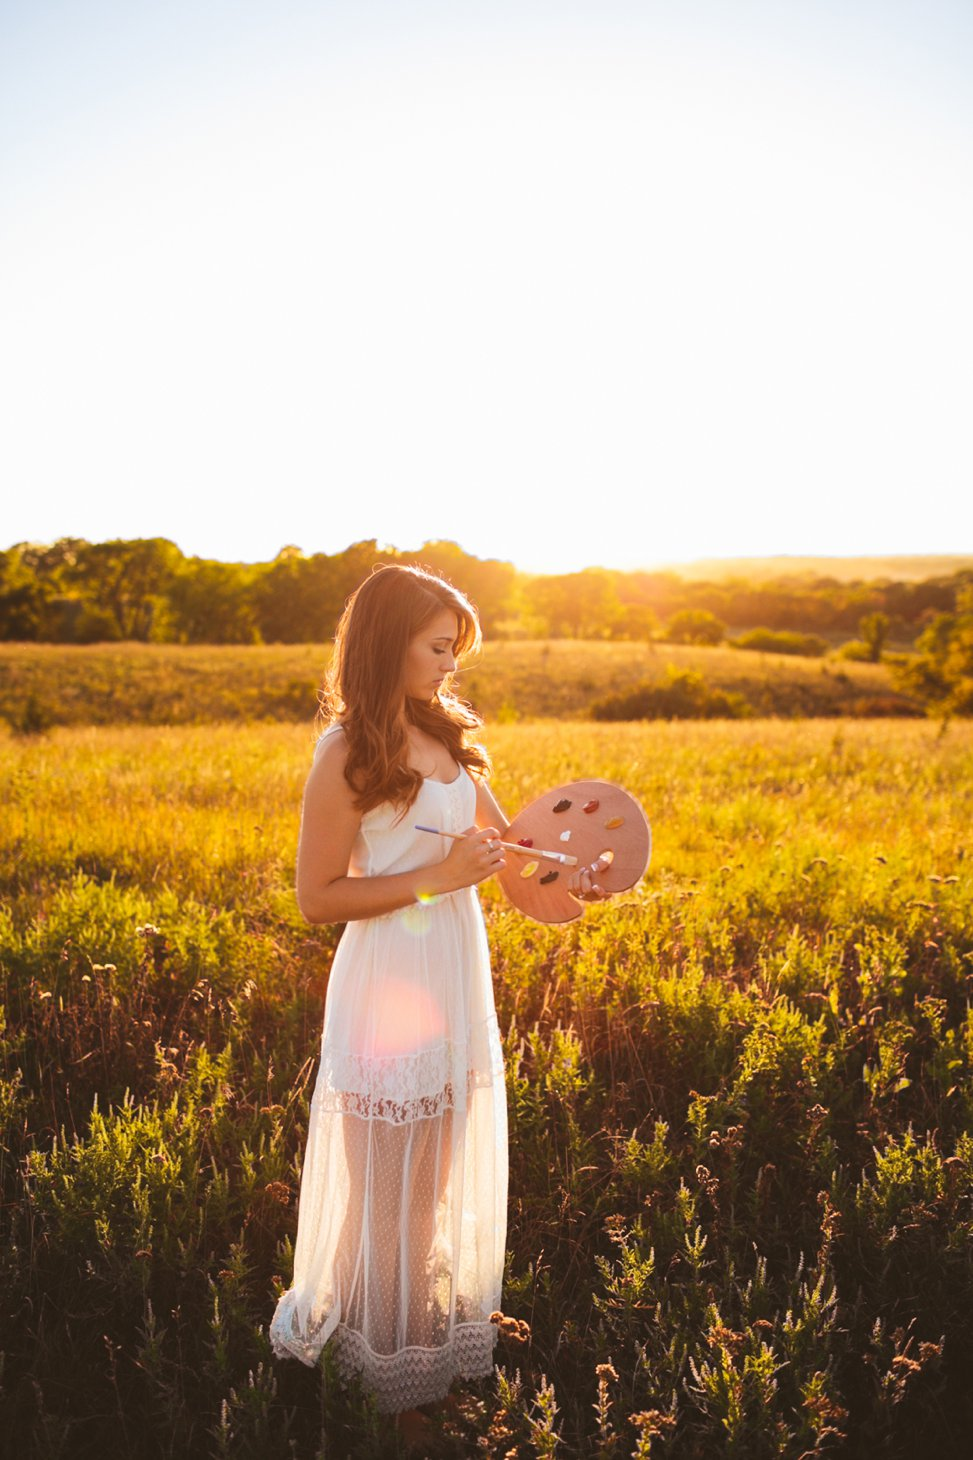 elyssa wyn wiley photography_601